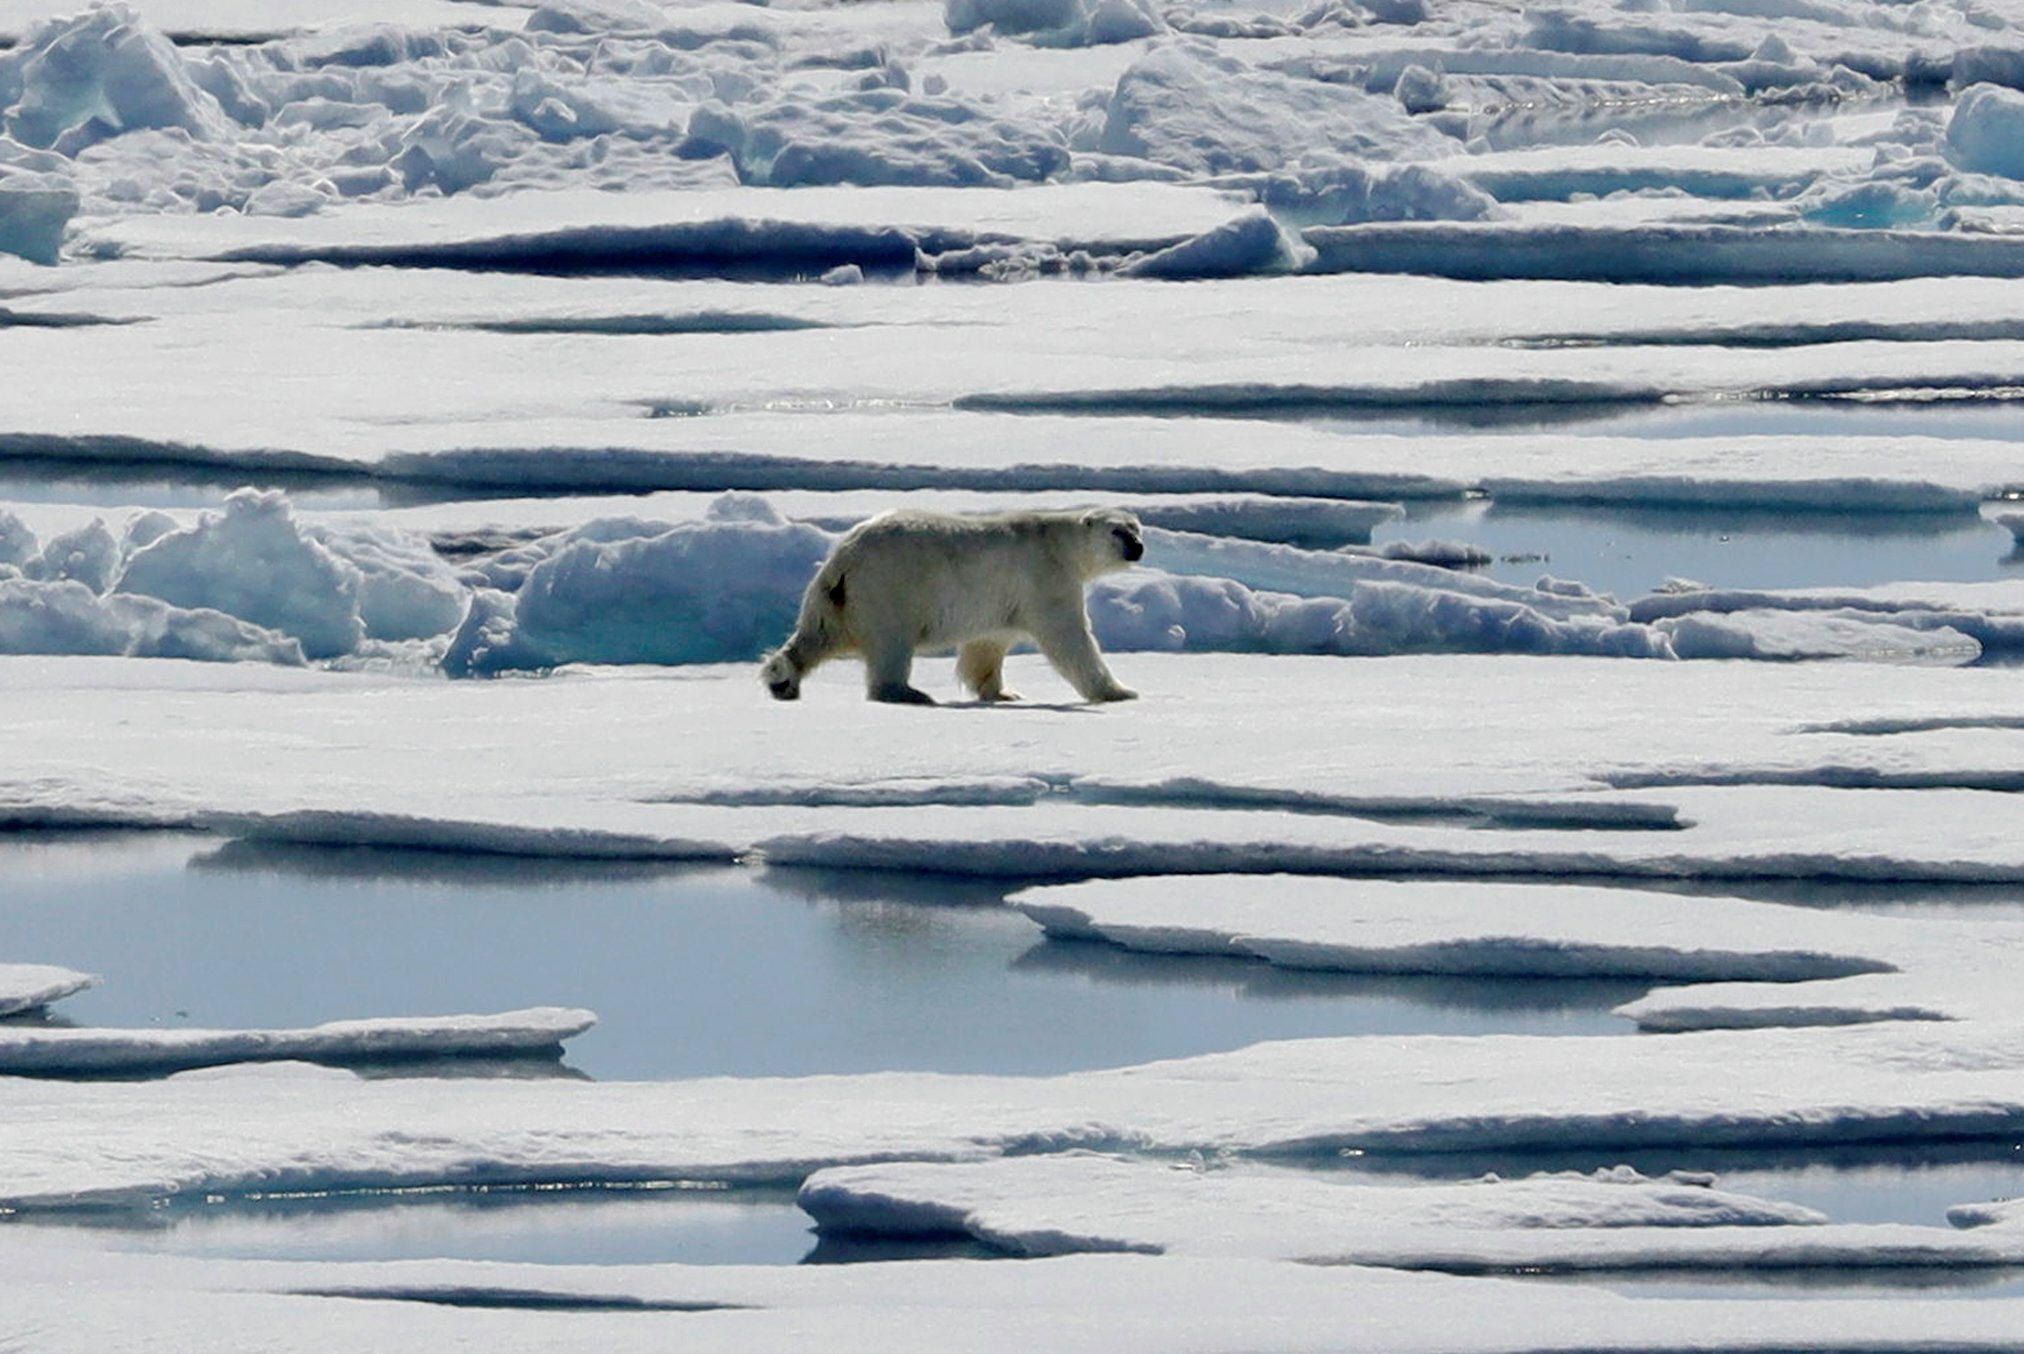 Susan Crockford fired after finding polar bears thriving despite climate change